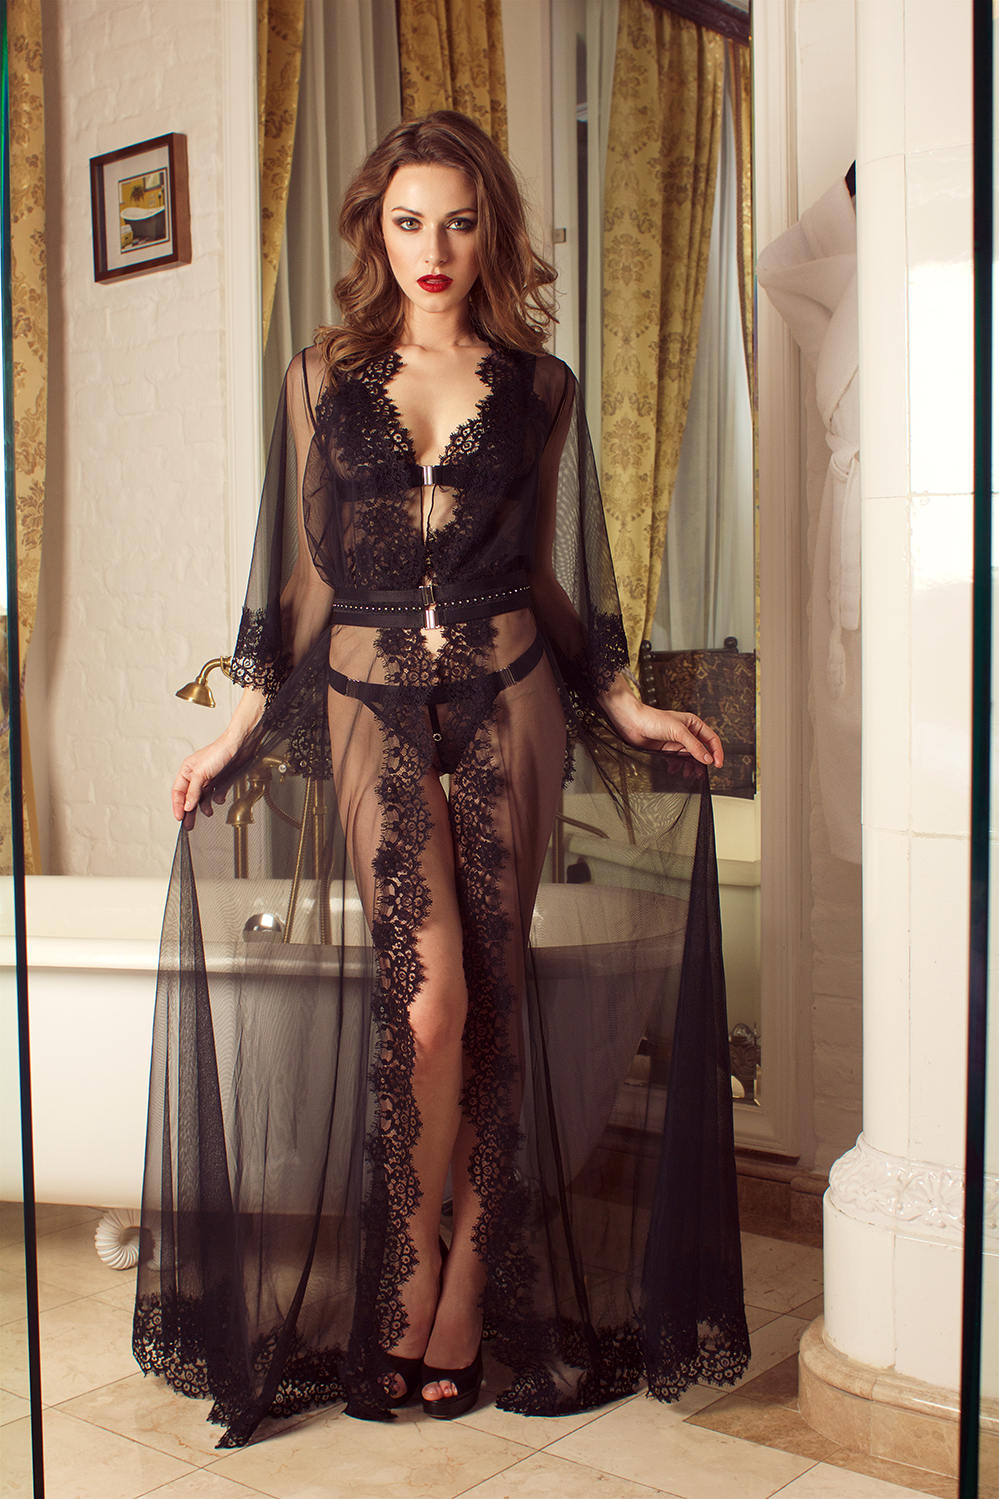 popular style select for latest cute Milady 11047 Maxi Lace Robe, Sheer Nightwear, Erotic Nightwear, Erotic  Lingerie, Sheer Lace Lingerie, Black Sleepwear   by VIPA